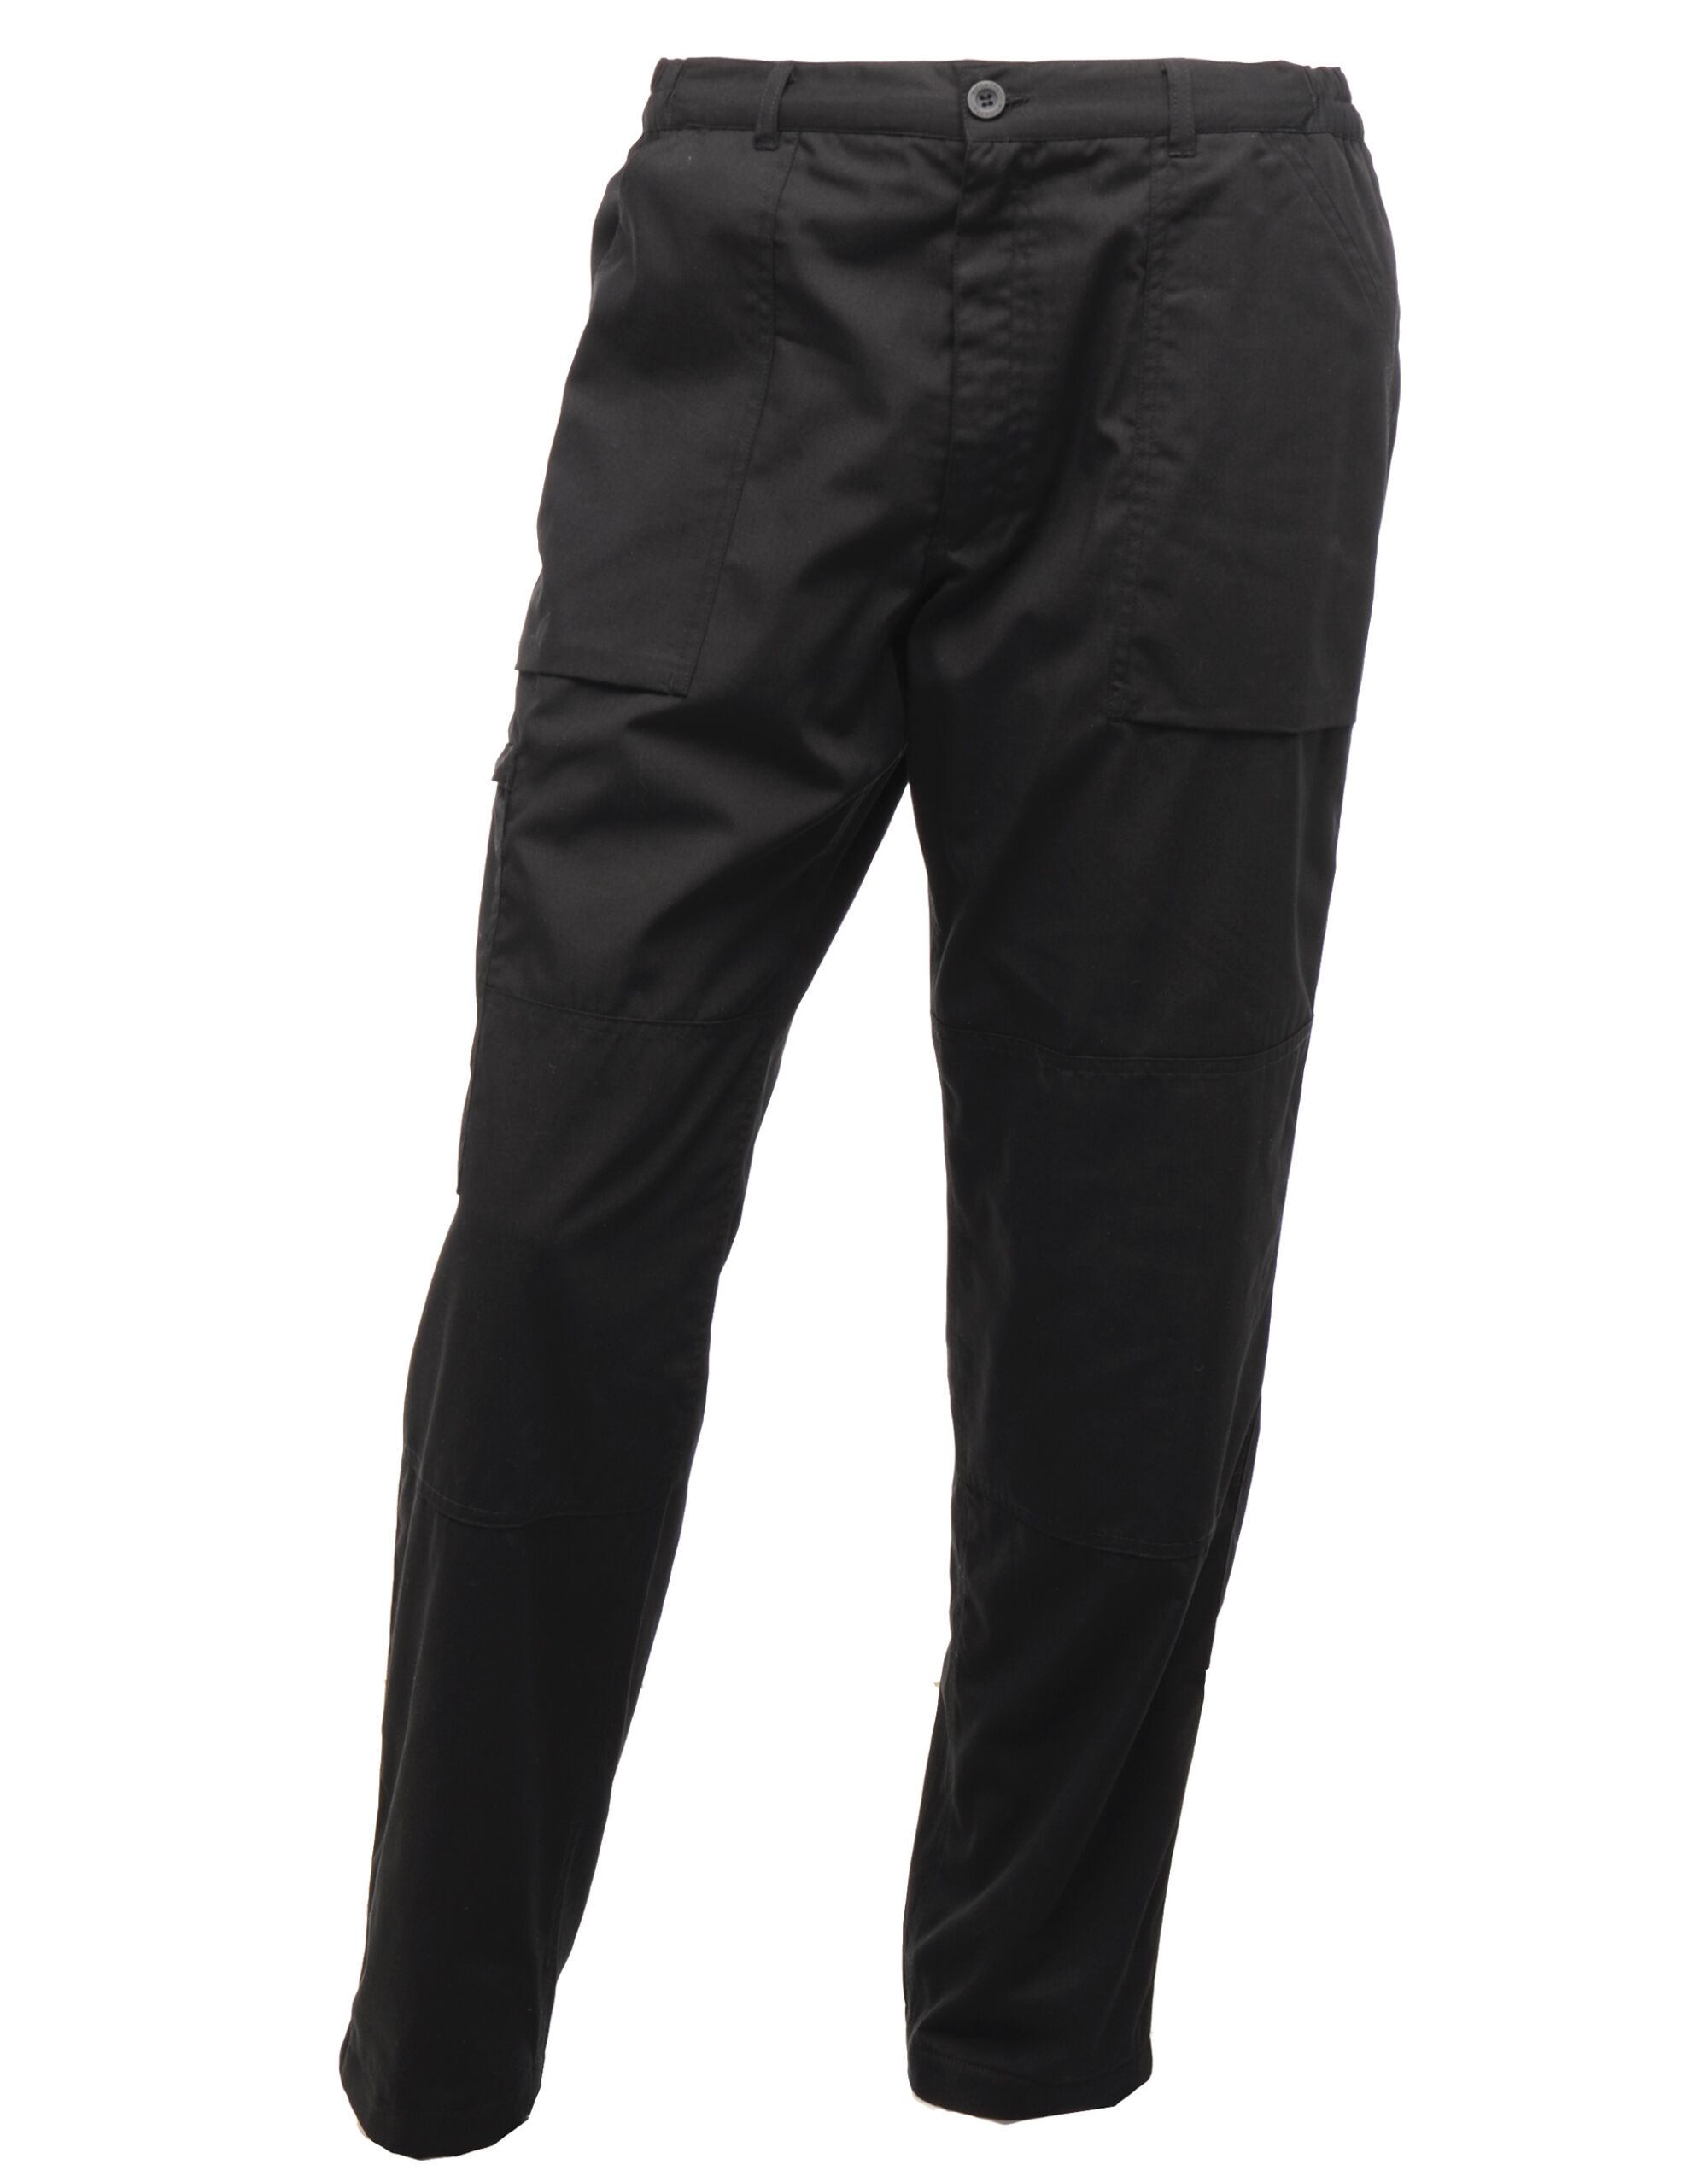 New Lined Action Trouser (Short)